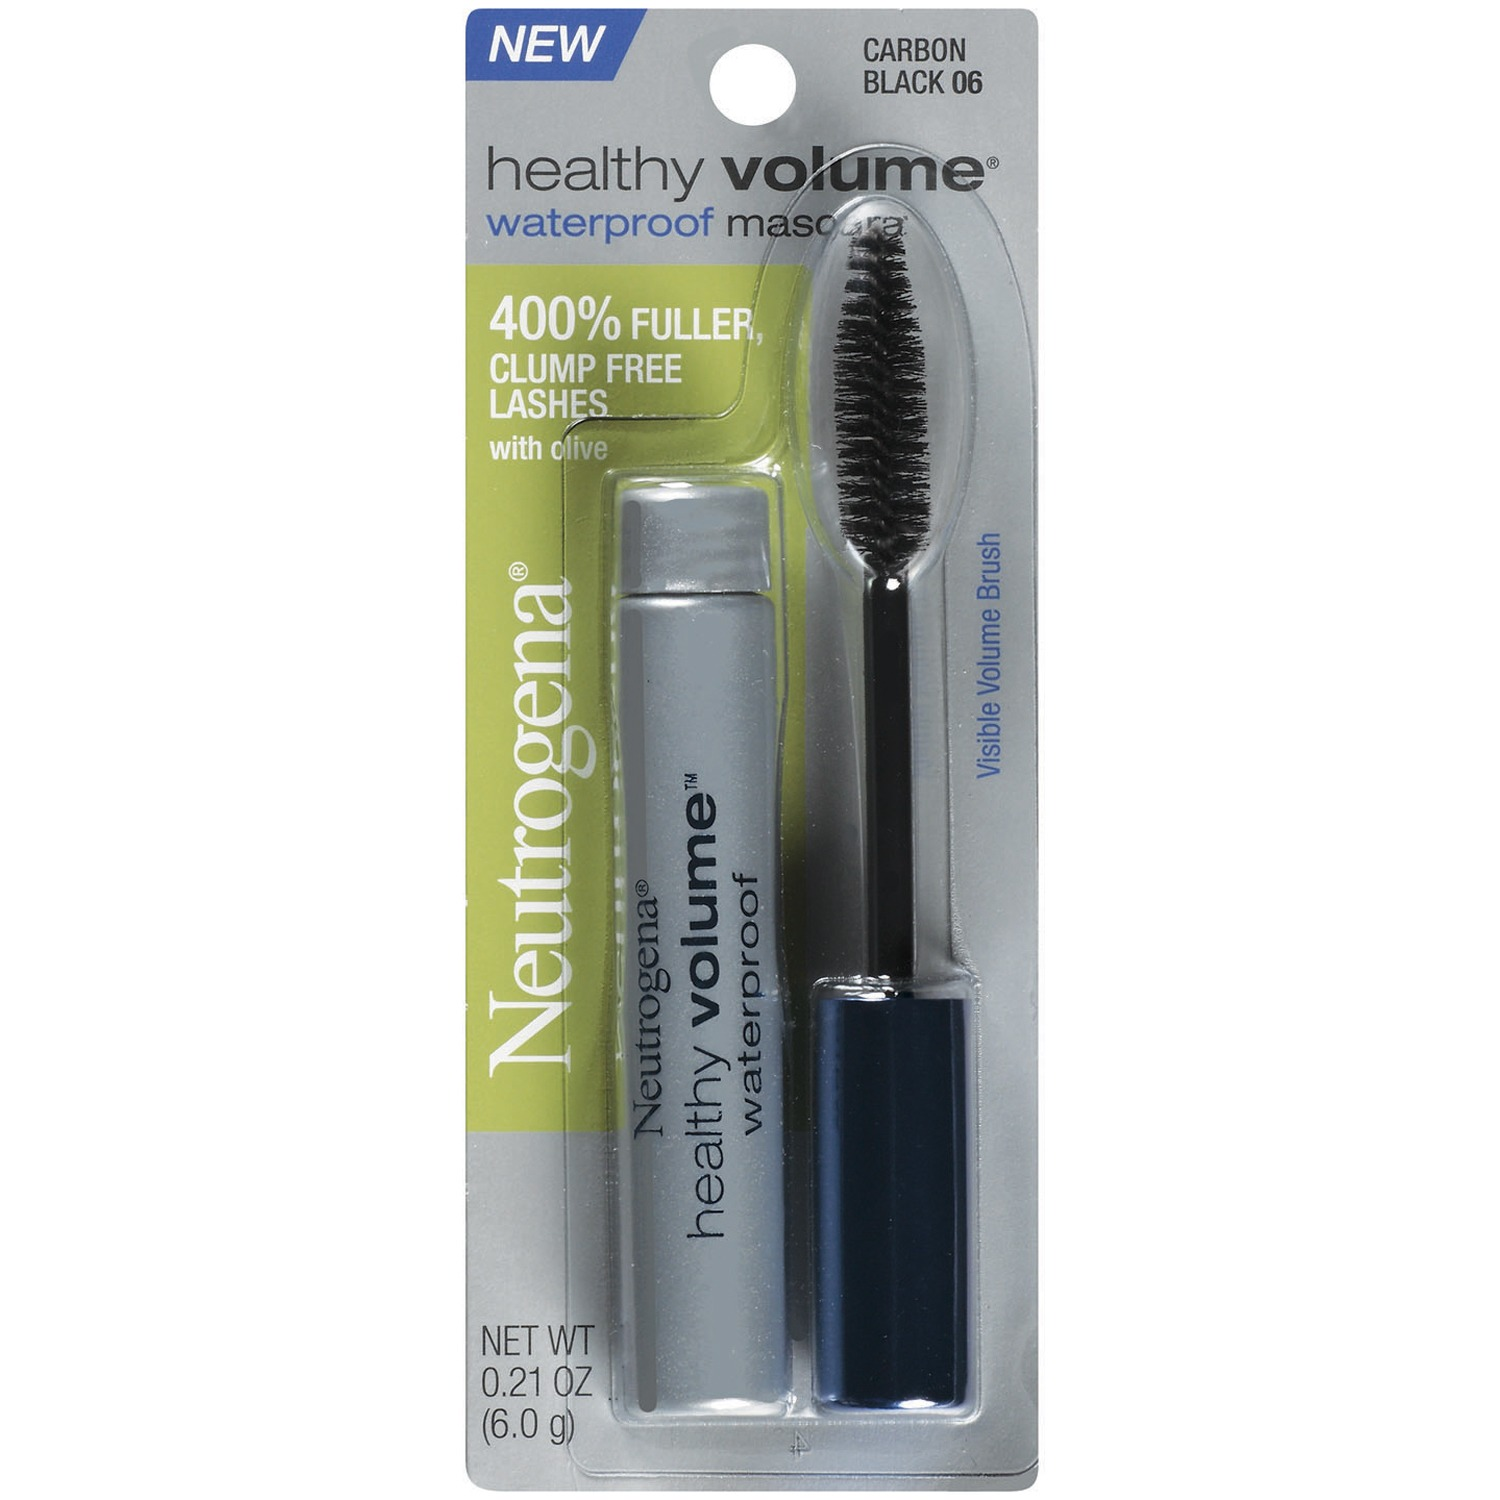 Neutrogena Healthy Volume Waterproof Mascara, Carbon Black 06, .21 Oz